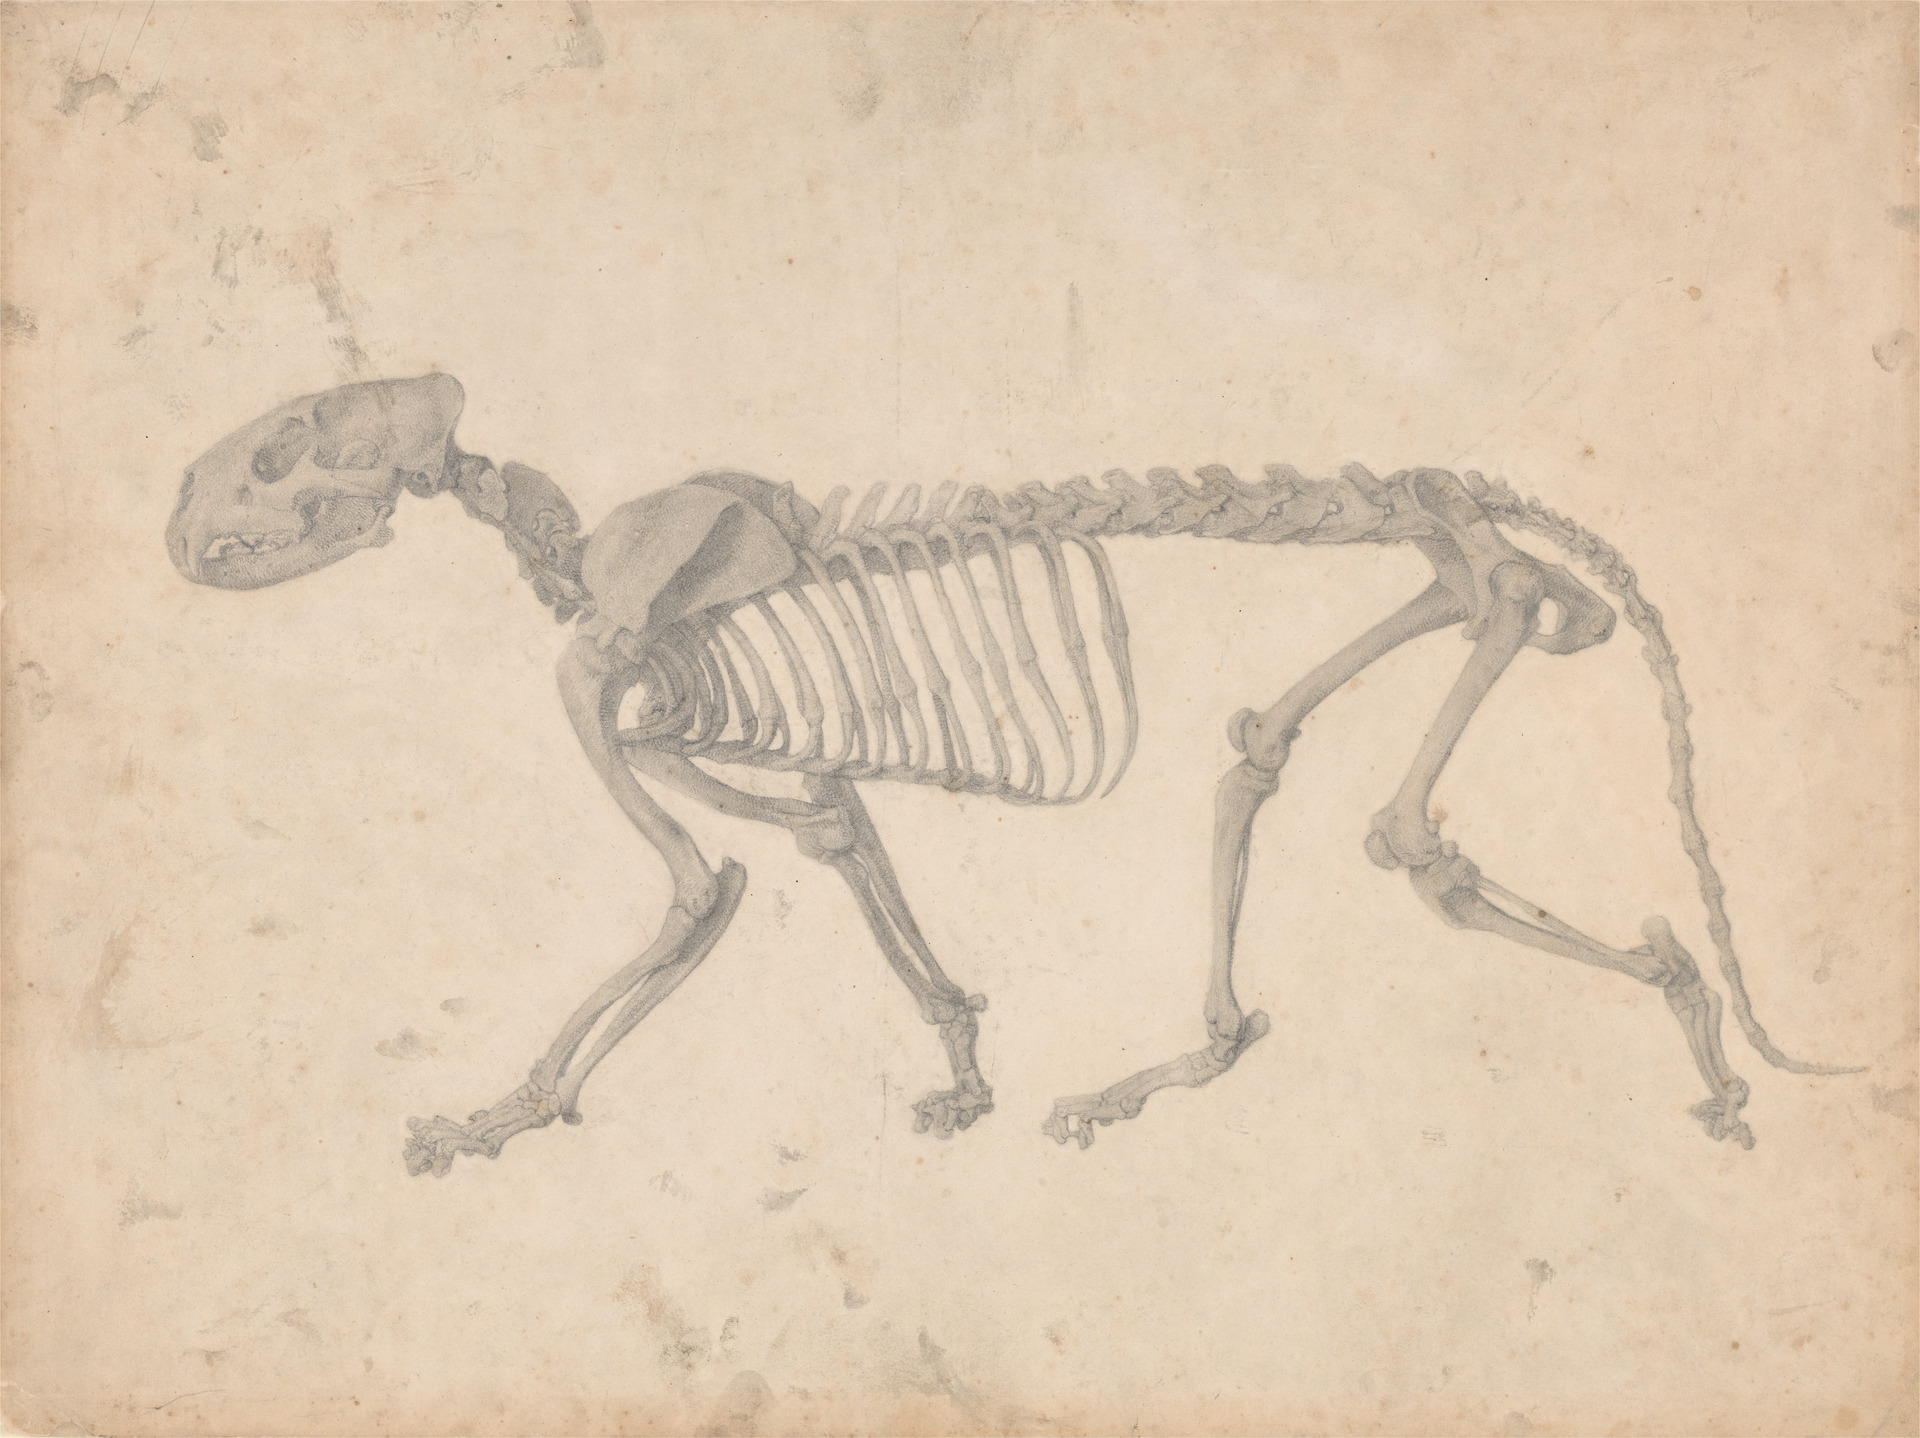 George Stubbs. Tiger Skeleton, Lateral View (Finished Study for Table IV).